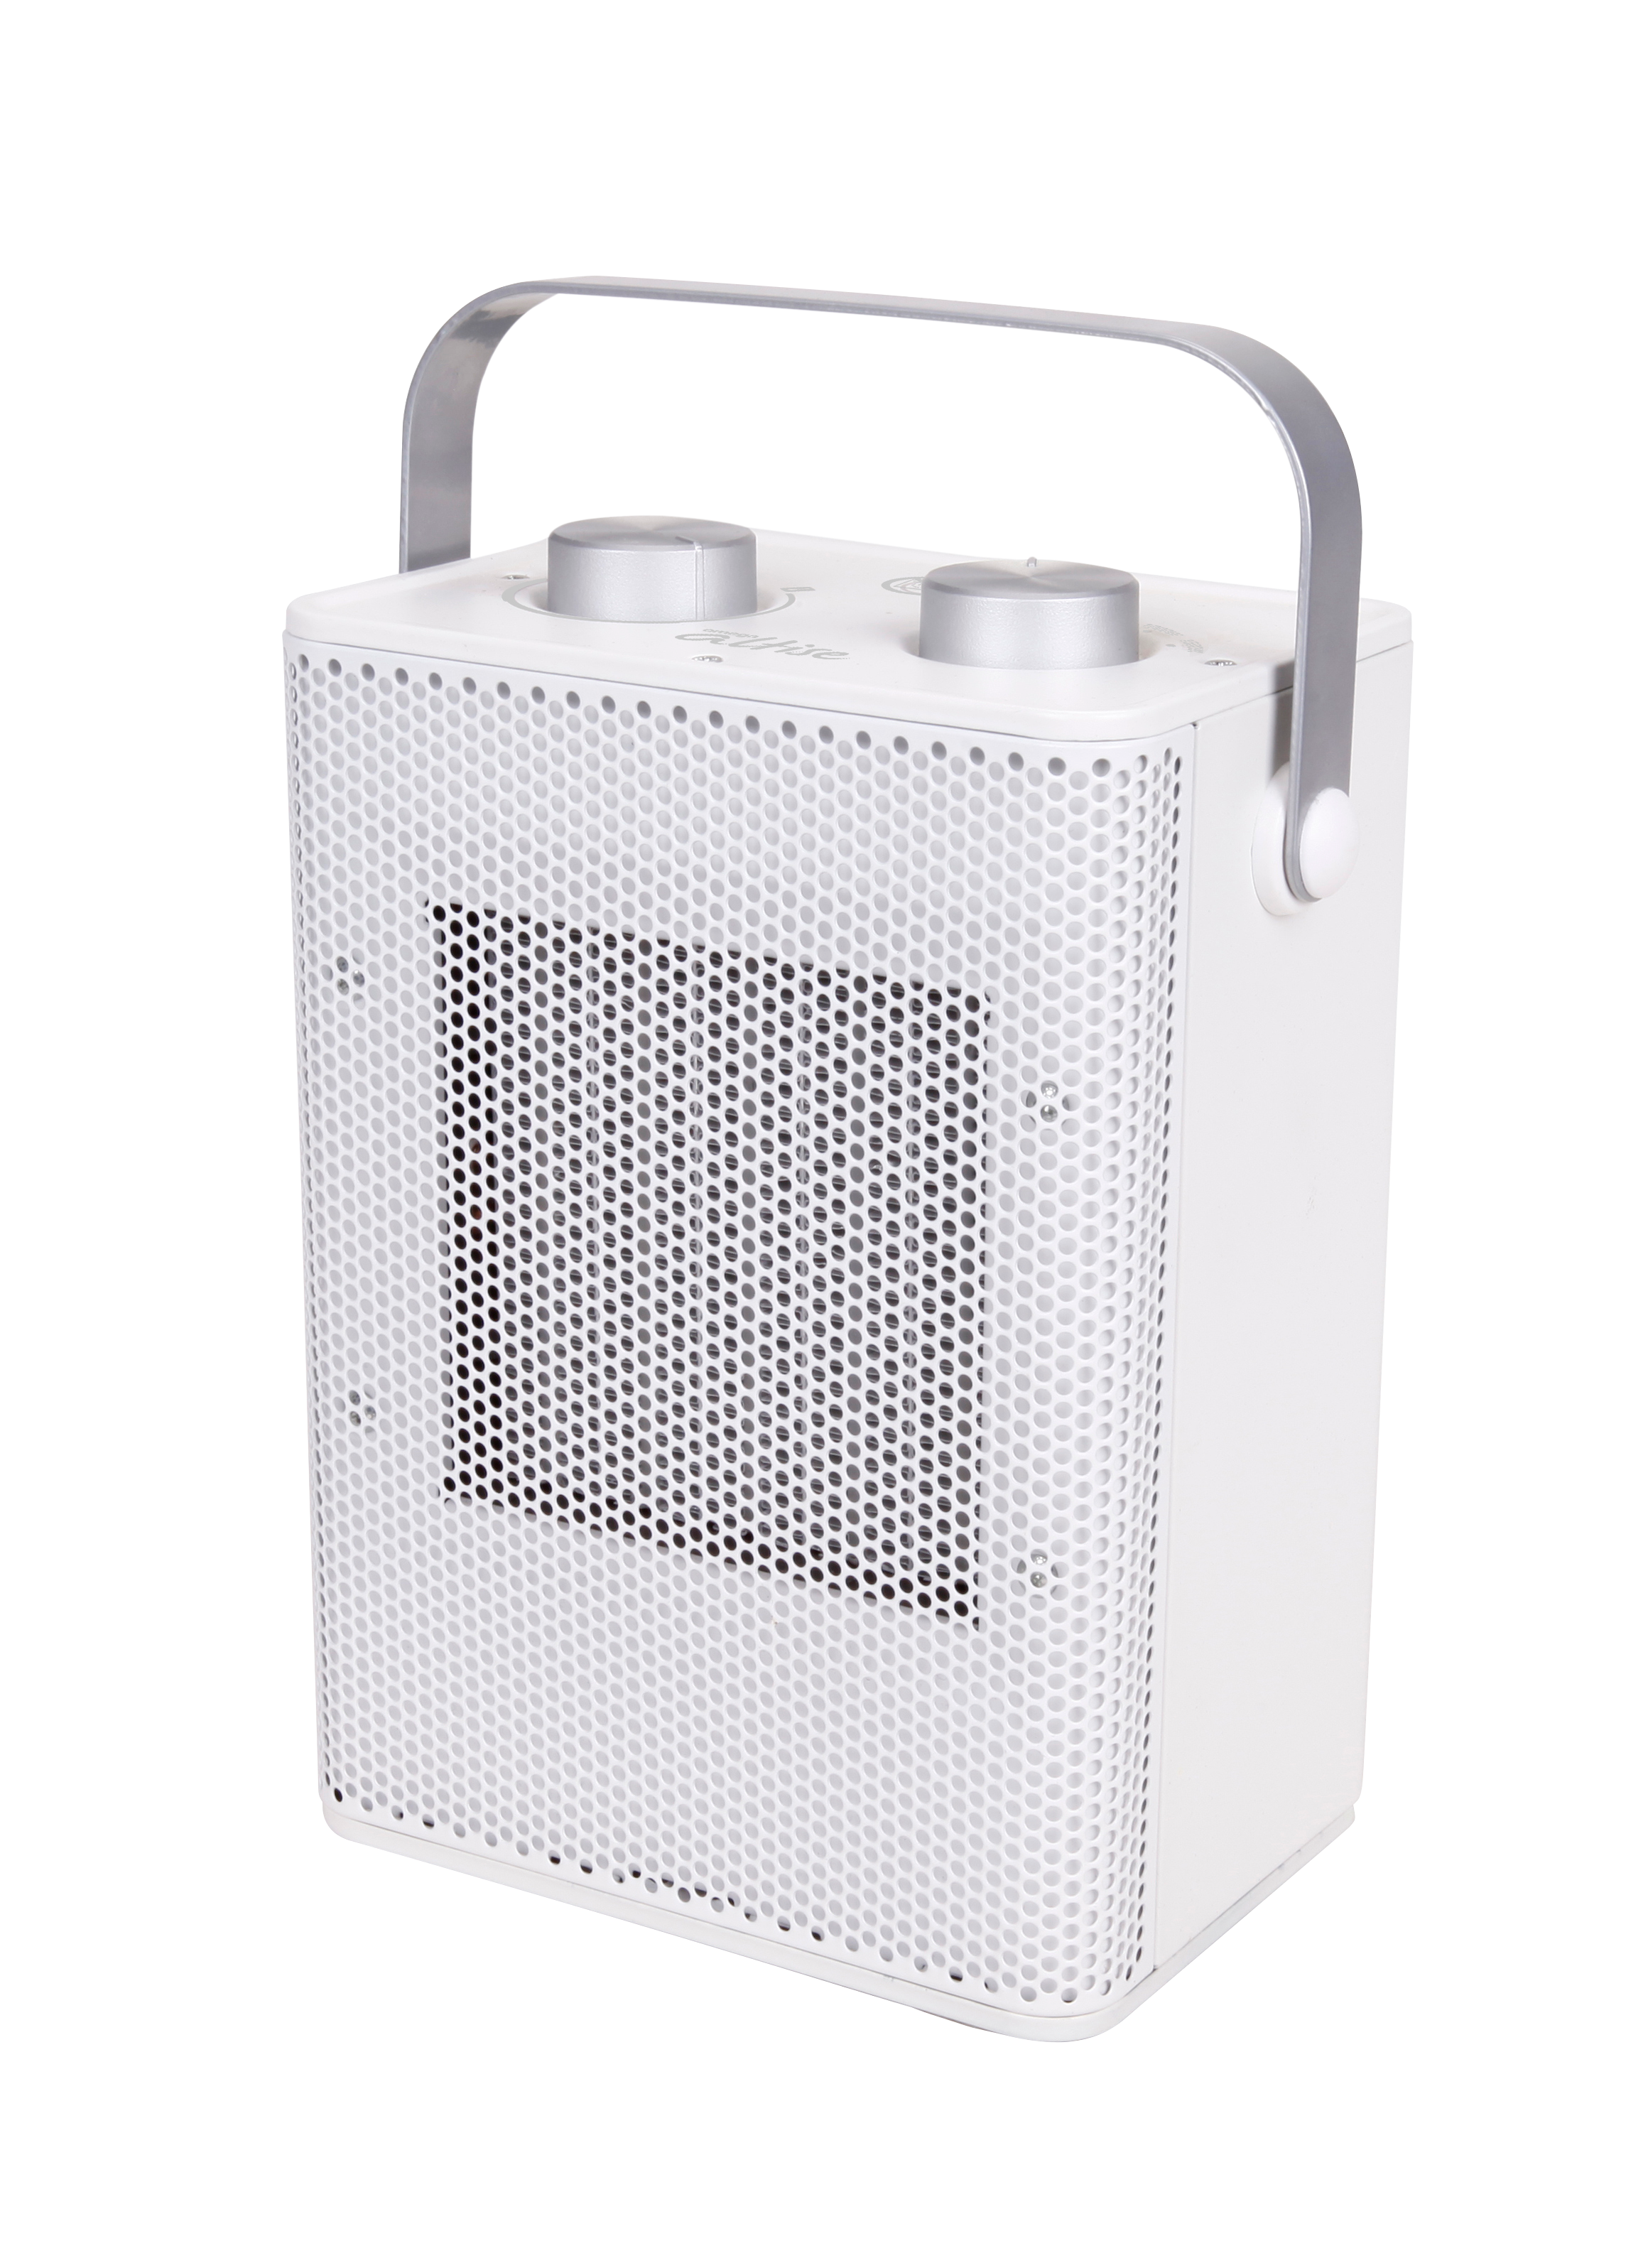 Omega Altise product Portable Ceramic Heater - White OACHM15W